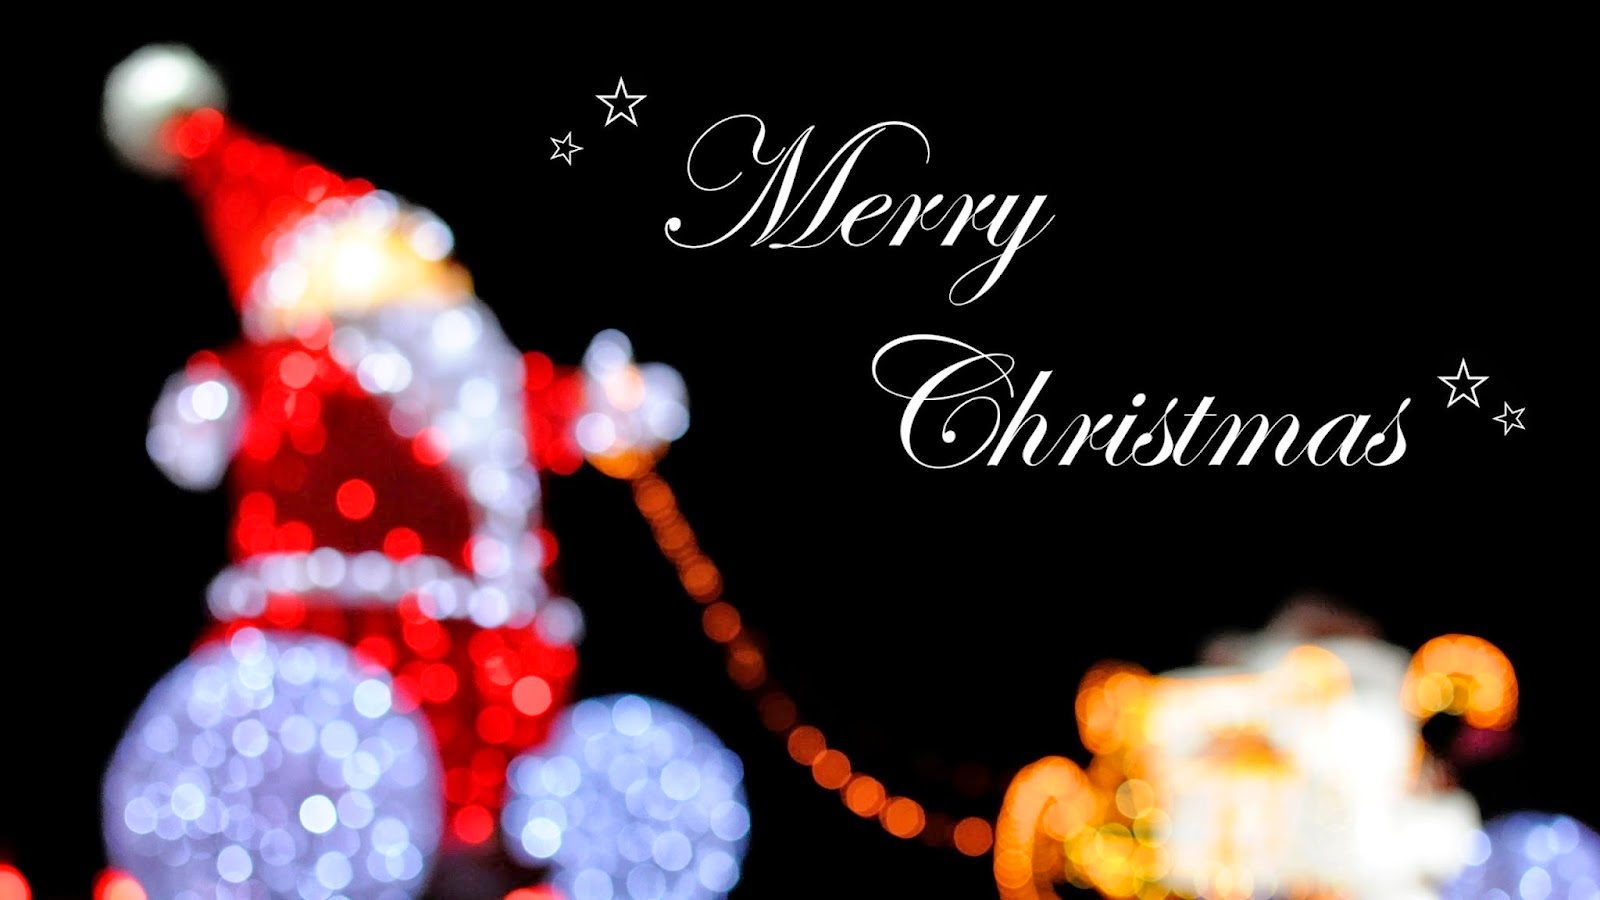 Beautiful Merry Christmas 2015 Wallpapers High Quality